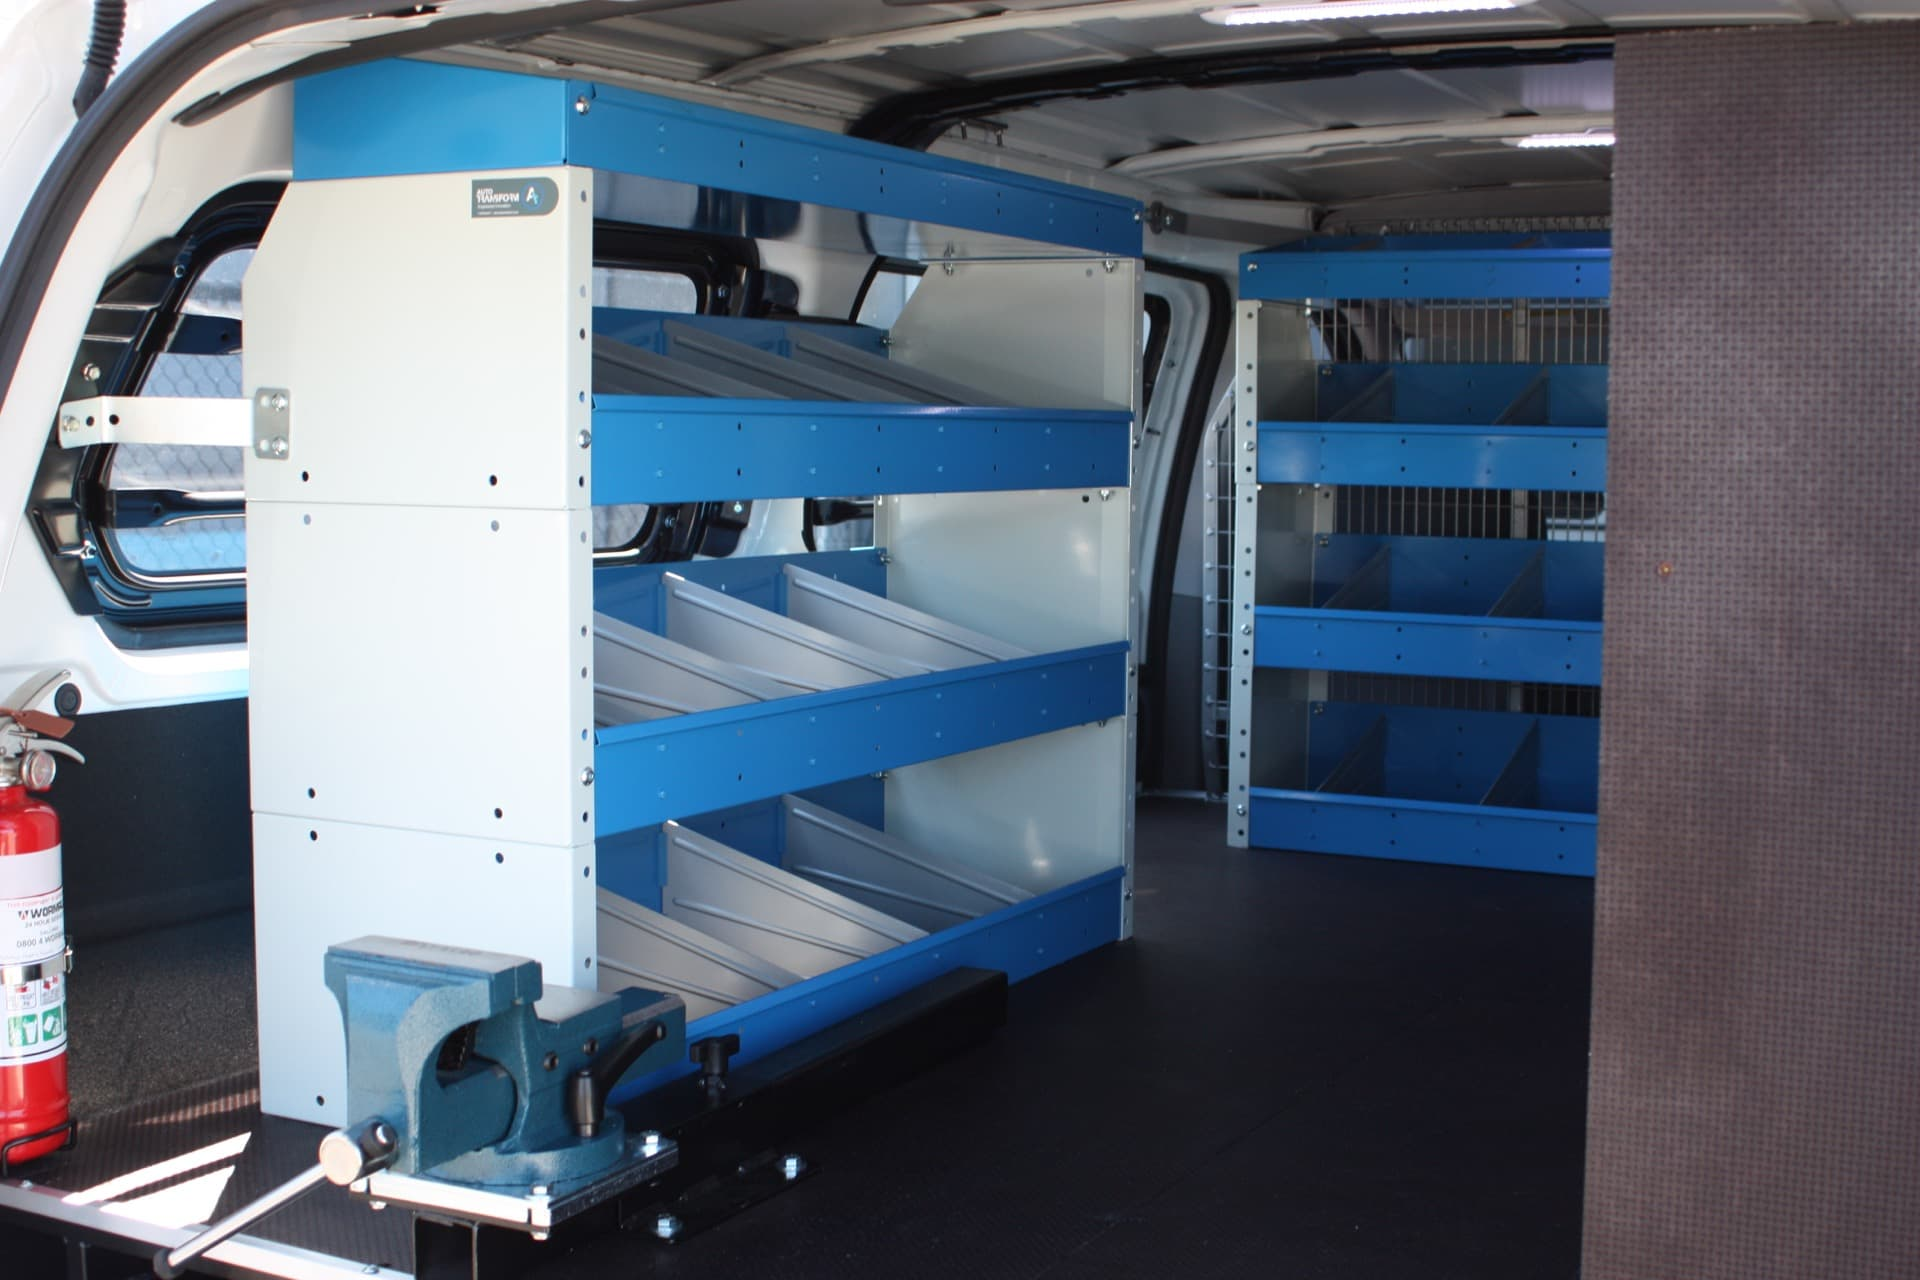 Commercial van fitout with shelves and drawers